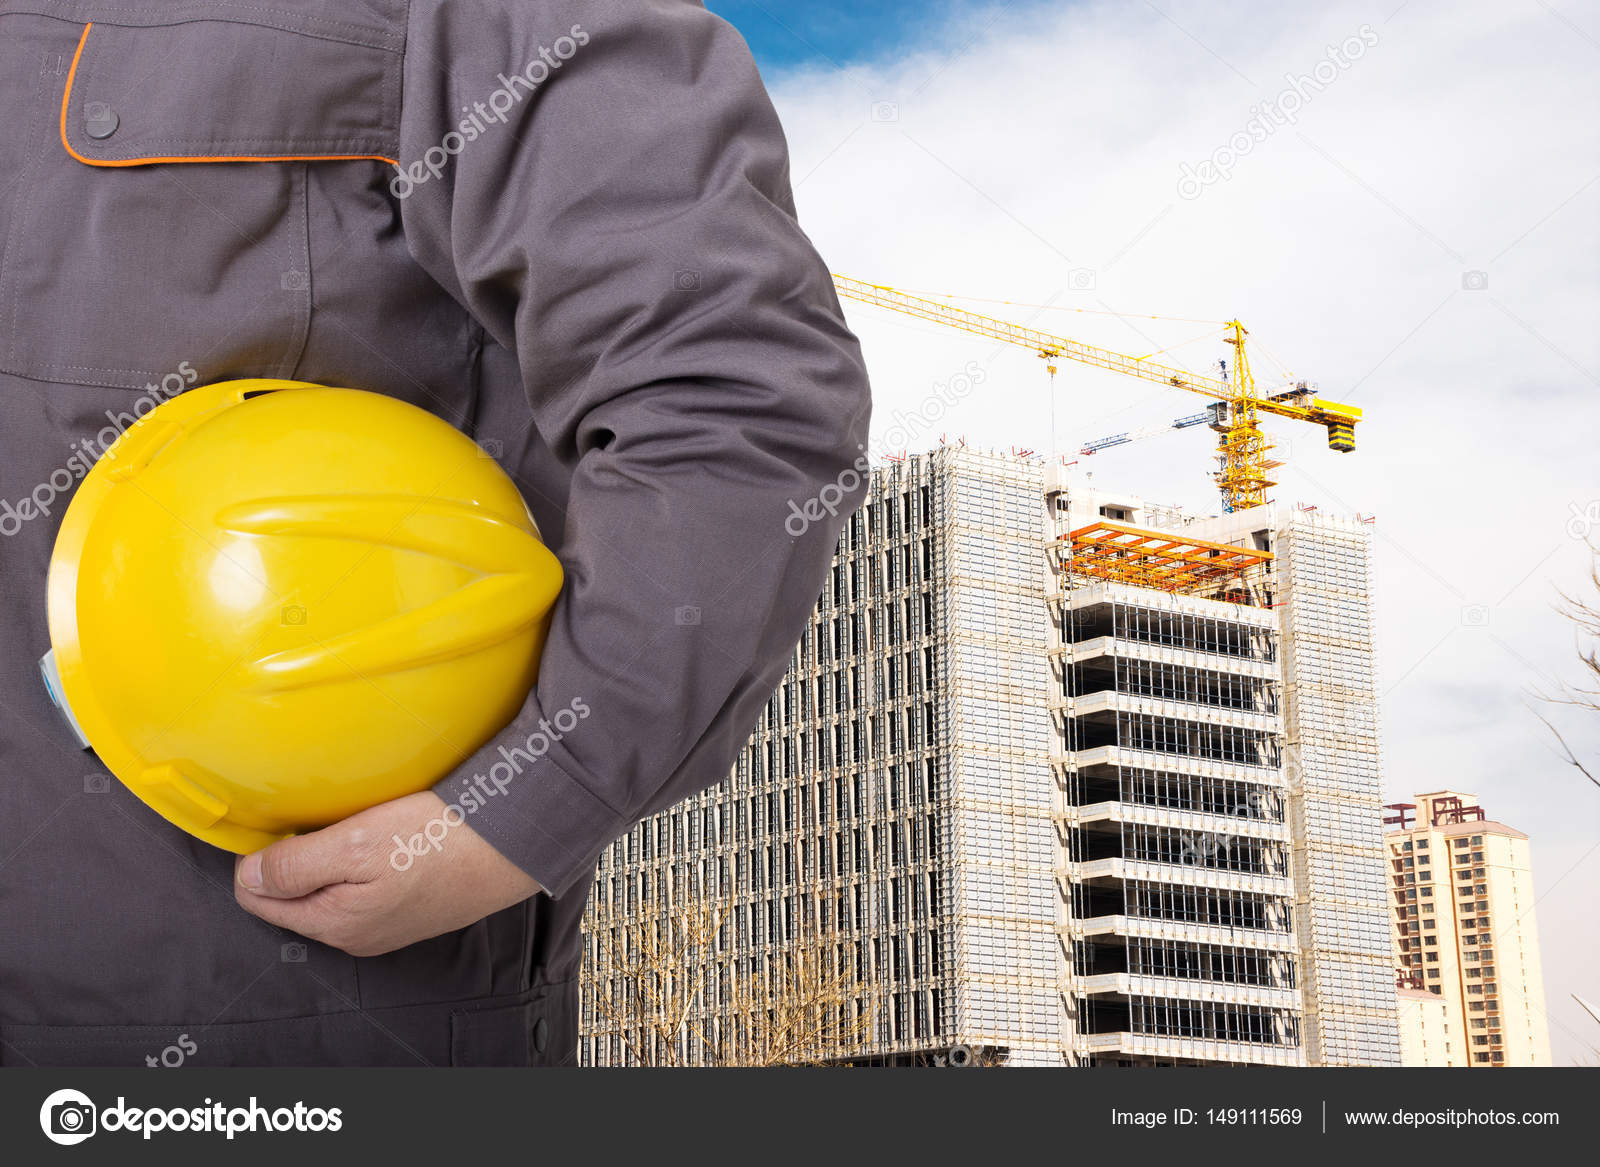 chinese man technician with yellow helmet standing front of constructions site photo by zhudifeng